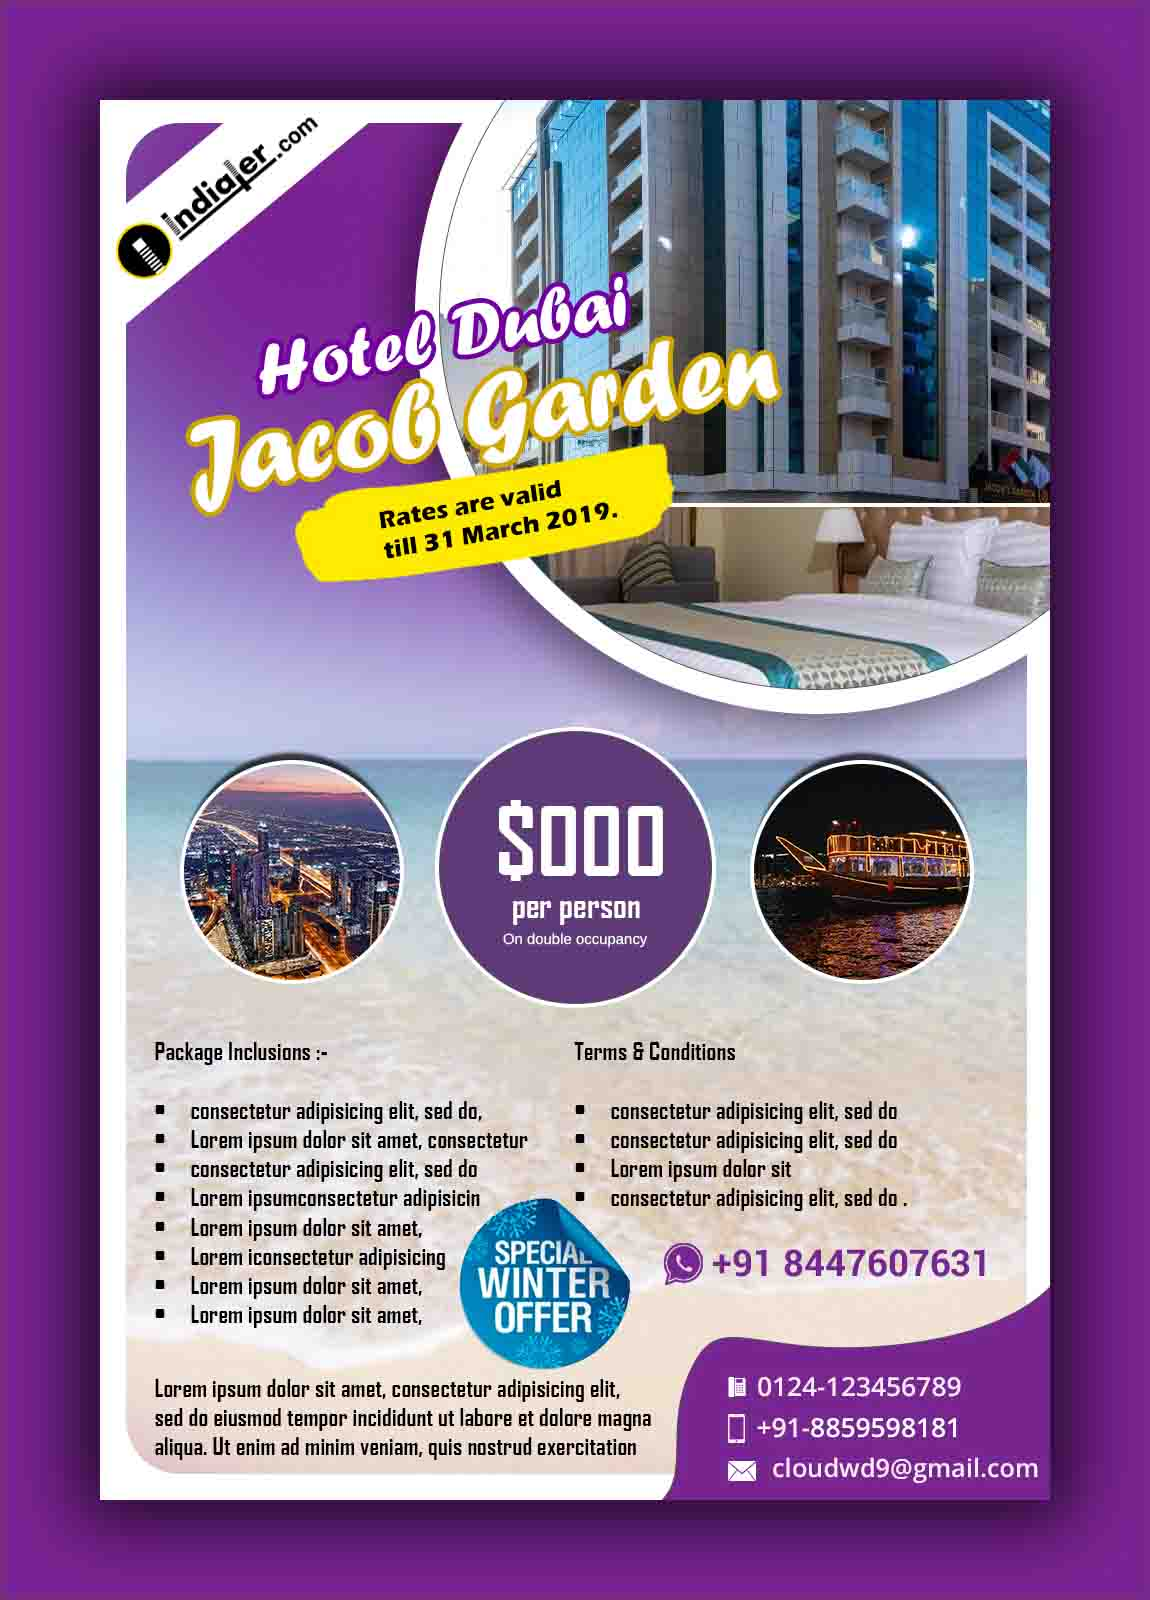 Dubai Jacob Garden Hotel promotion flyer template